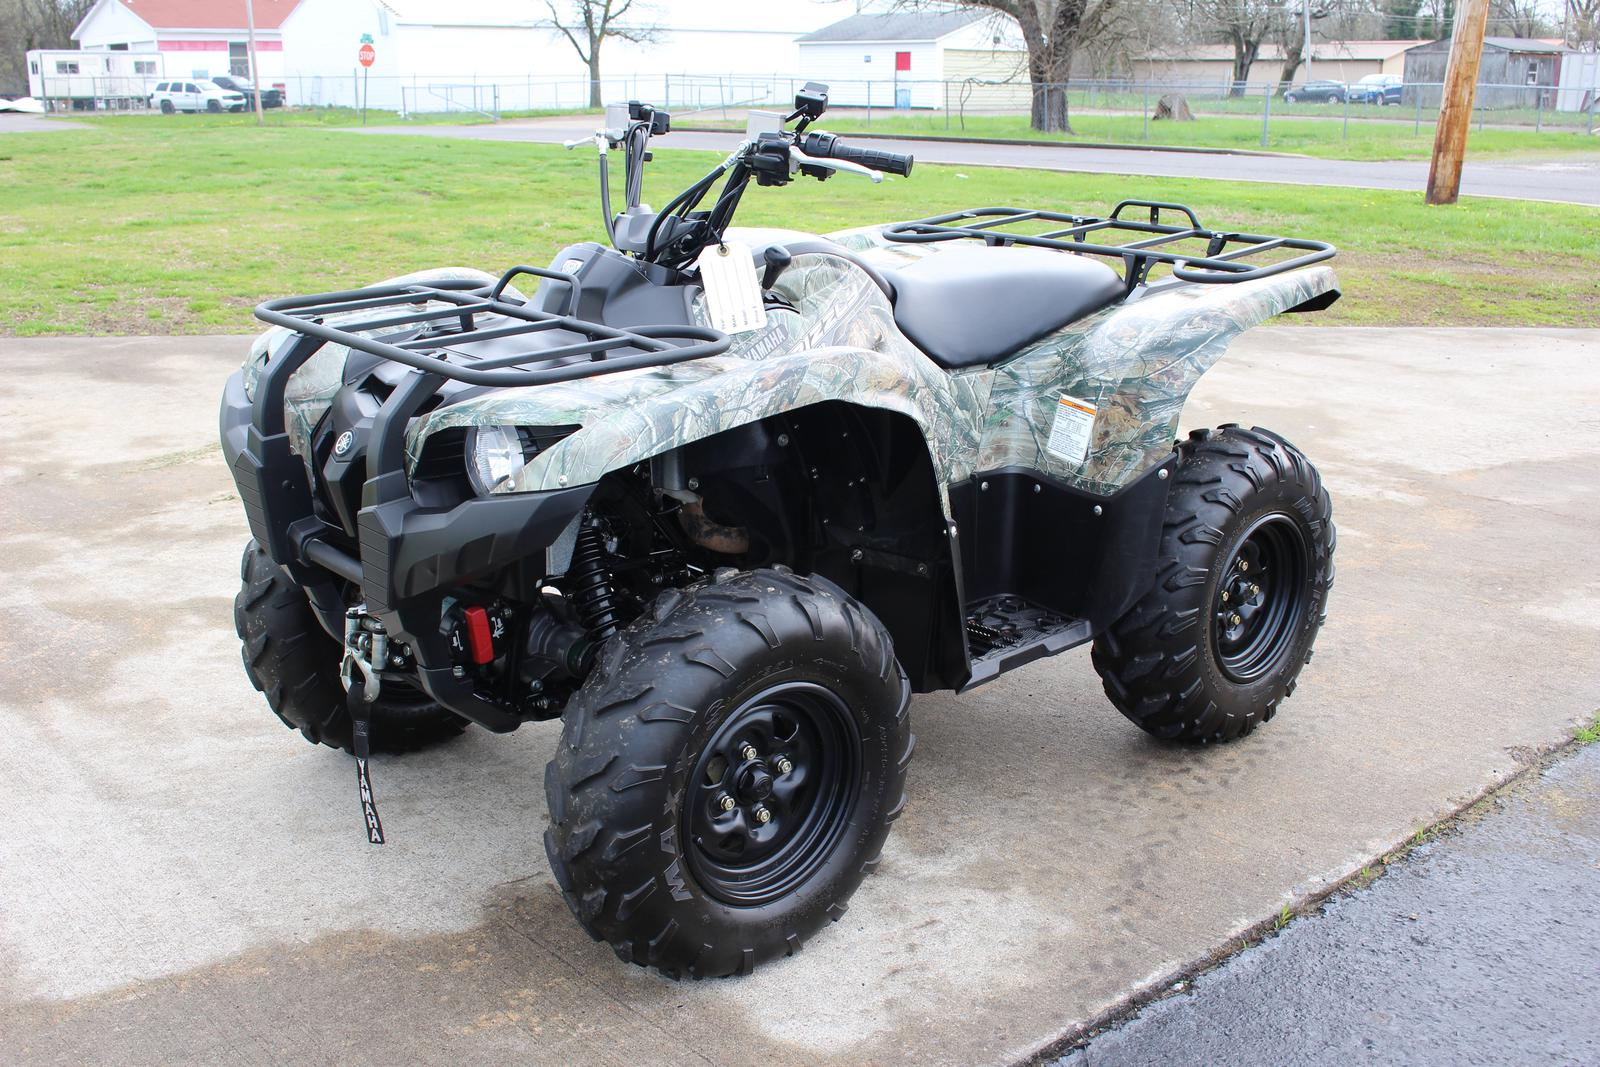 2013 Yamaha GRIZZLY 700 EFI 4X4 EPS CAMO for sale in Paducah, KY ...